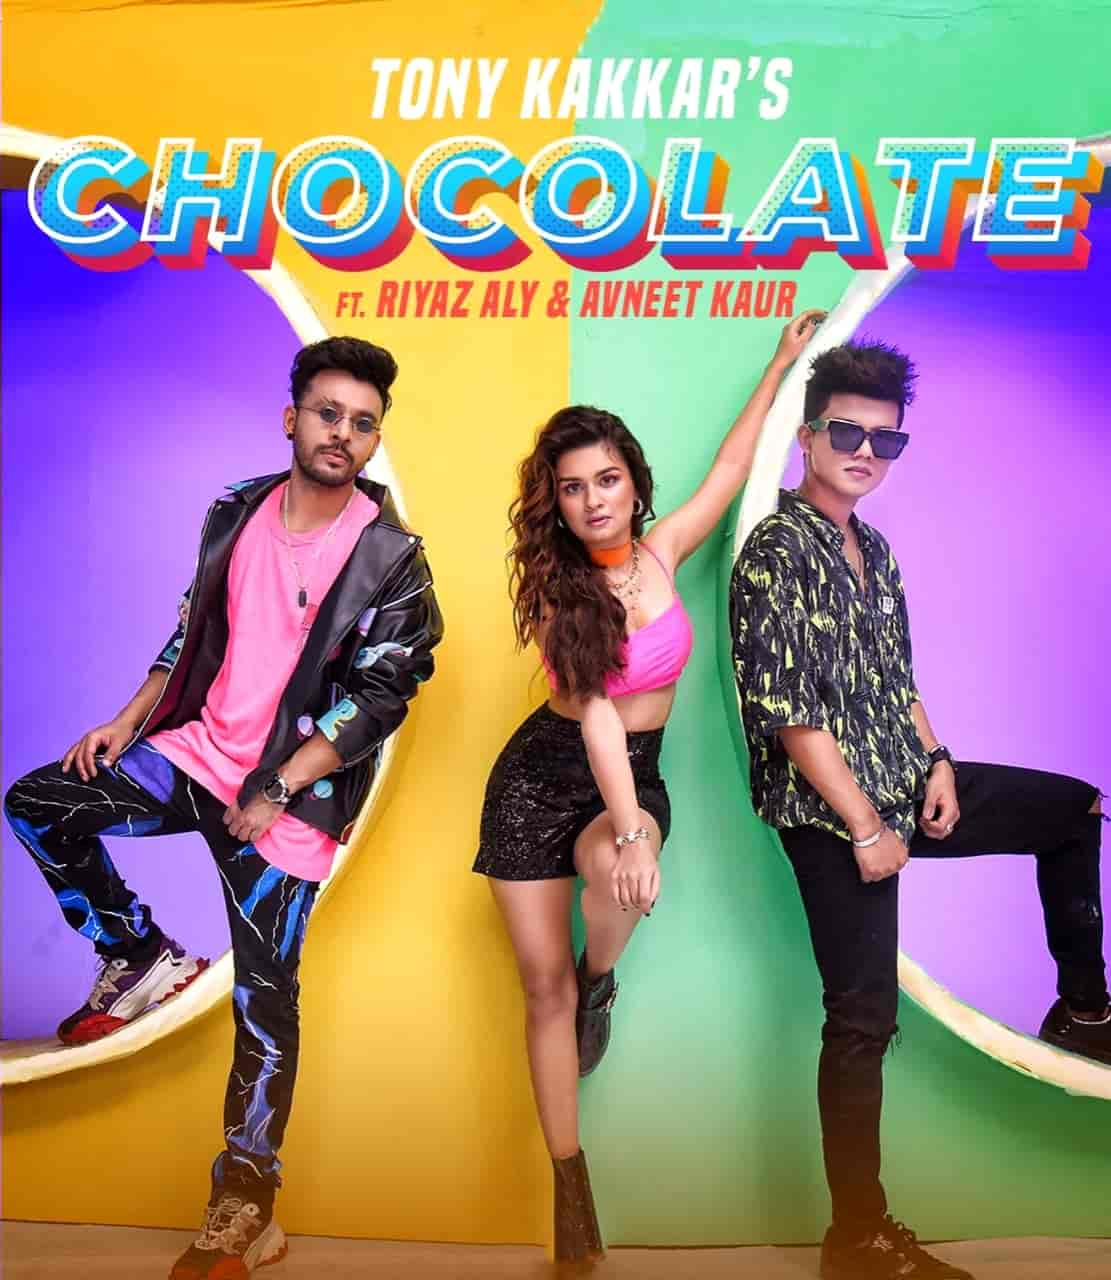 Chocolate Hindi Song Image Features Avneet Kaur and Riyaz Aly